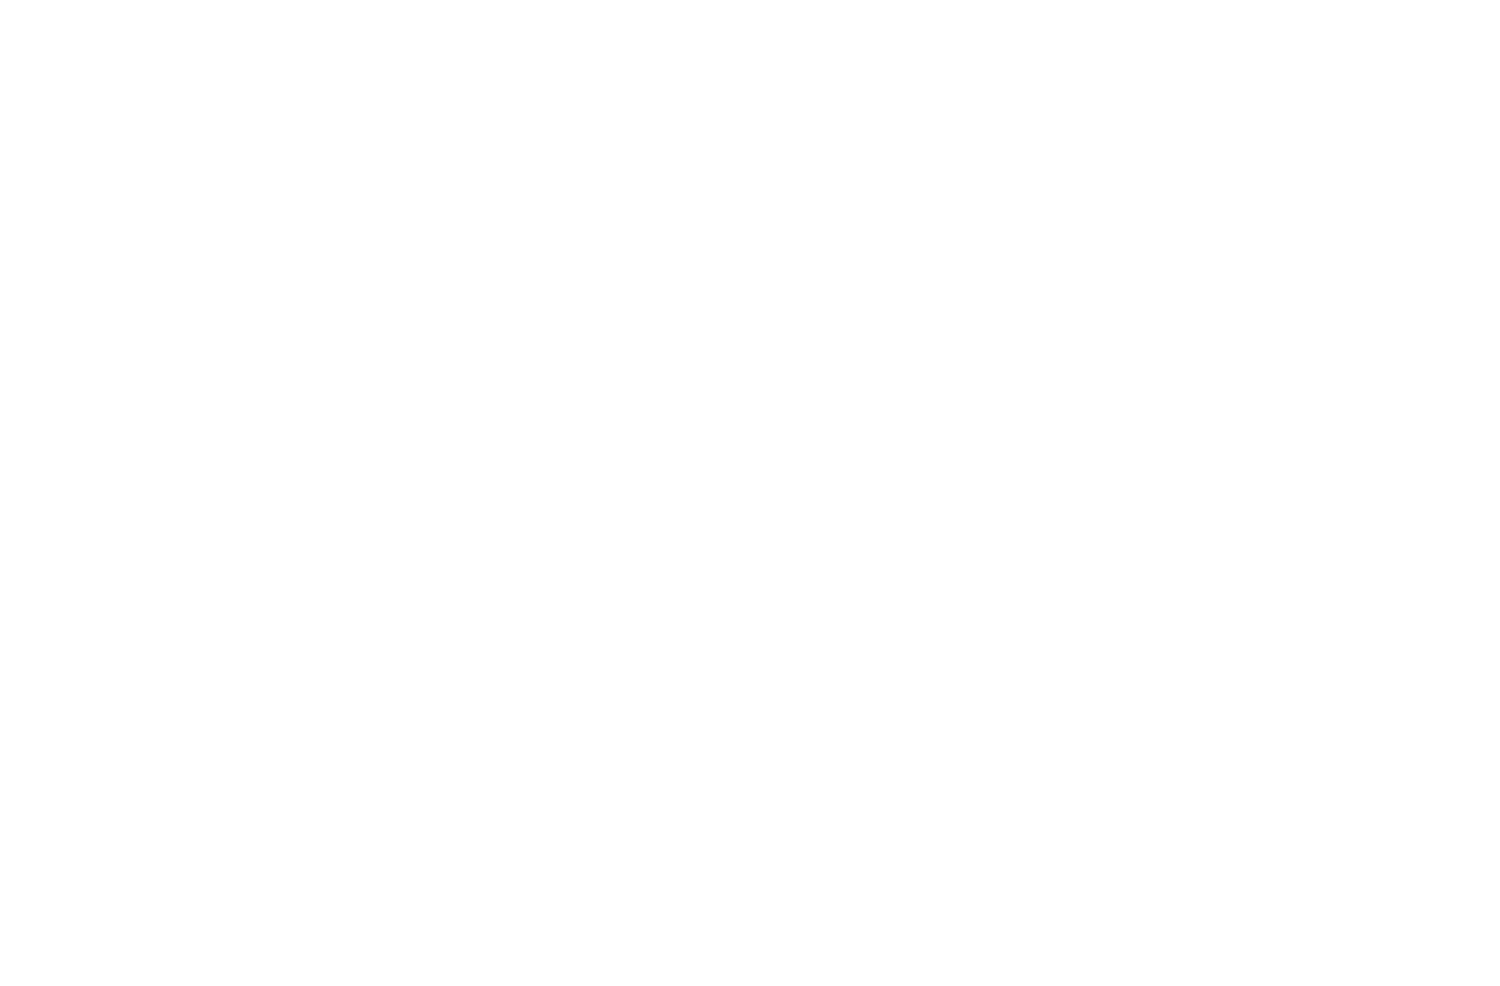 Plate & Glass